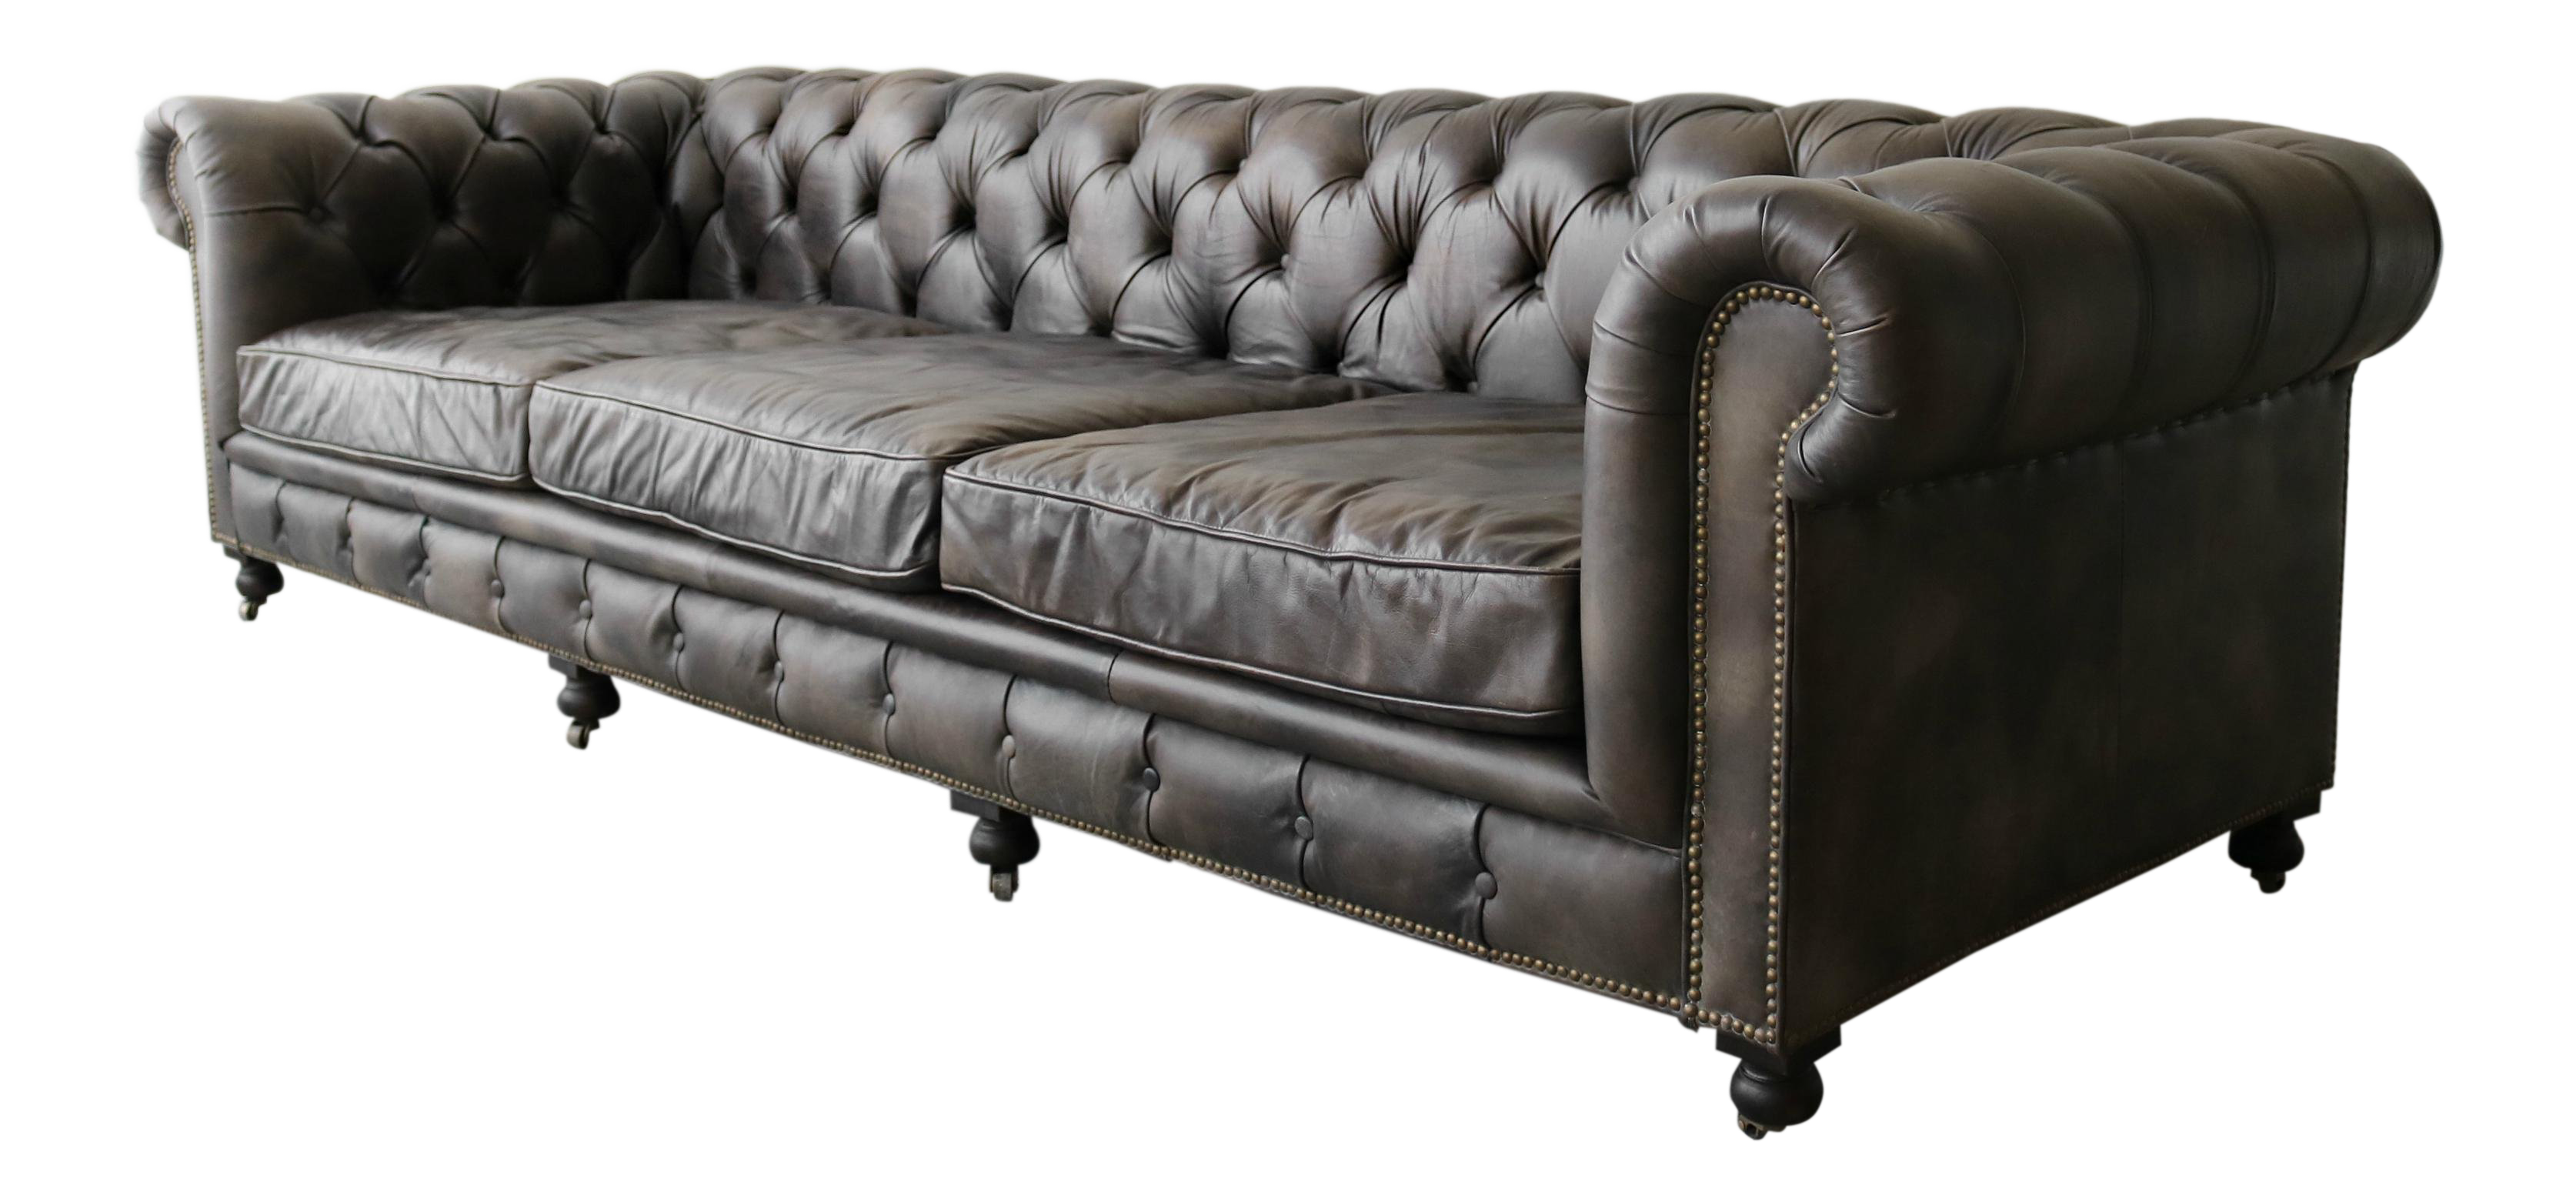 10ft Italian Leather Chesterfield Sofa On Chairish Com Sofa Leather Chesterfield Sofa Chesterfield Sofa